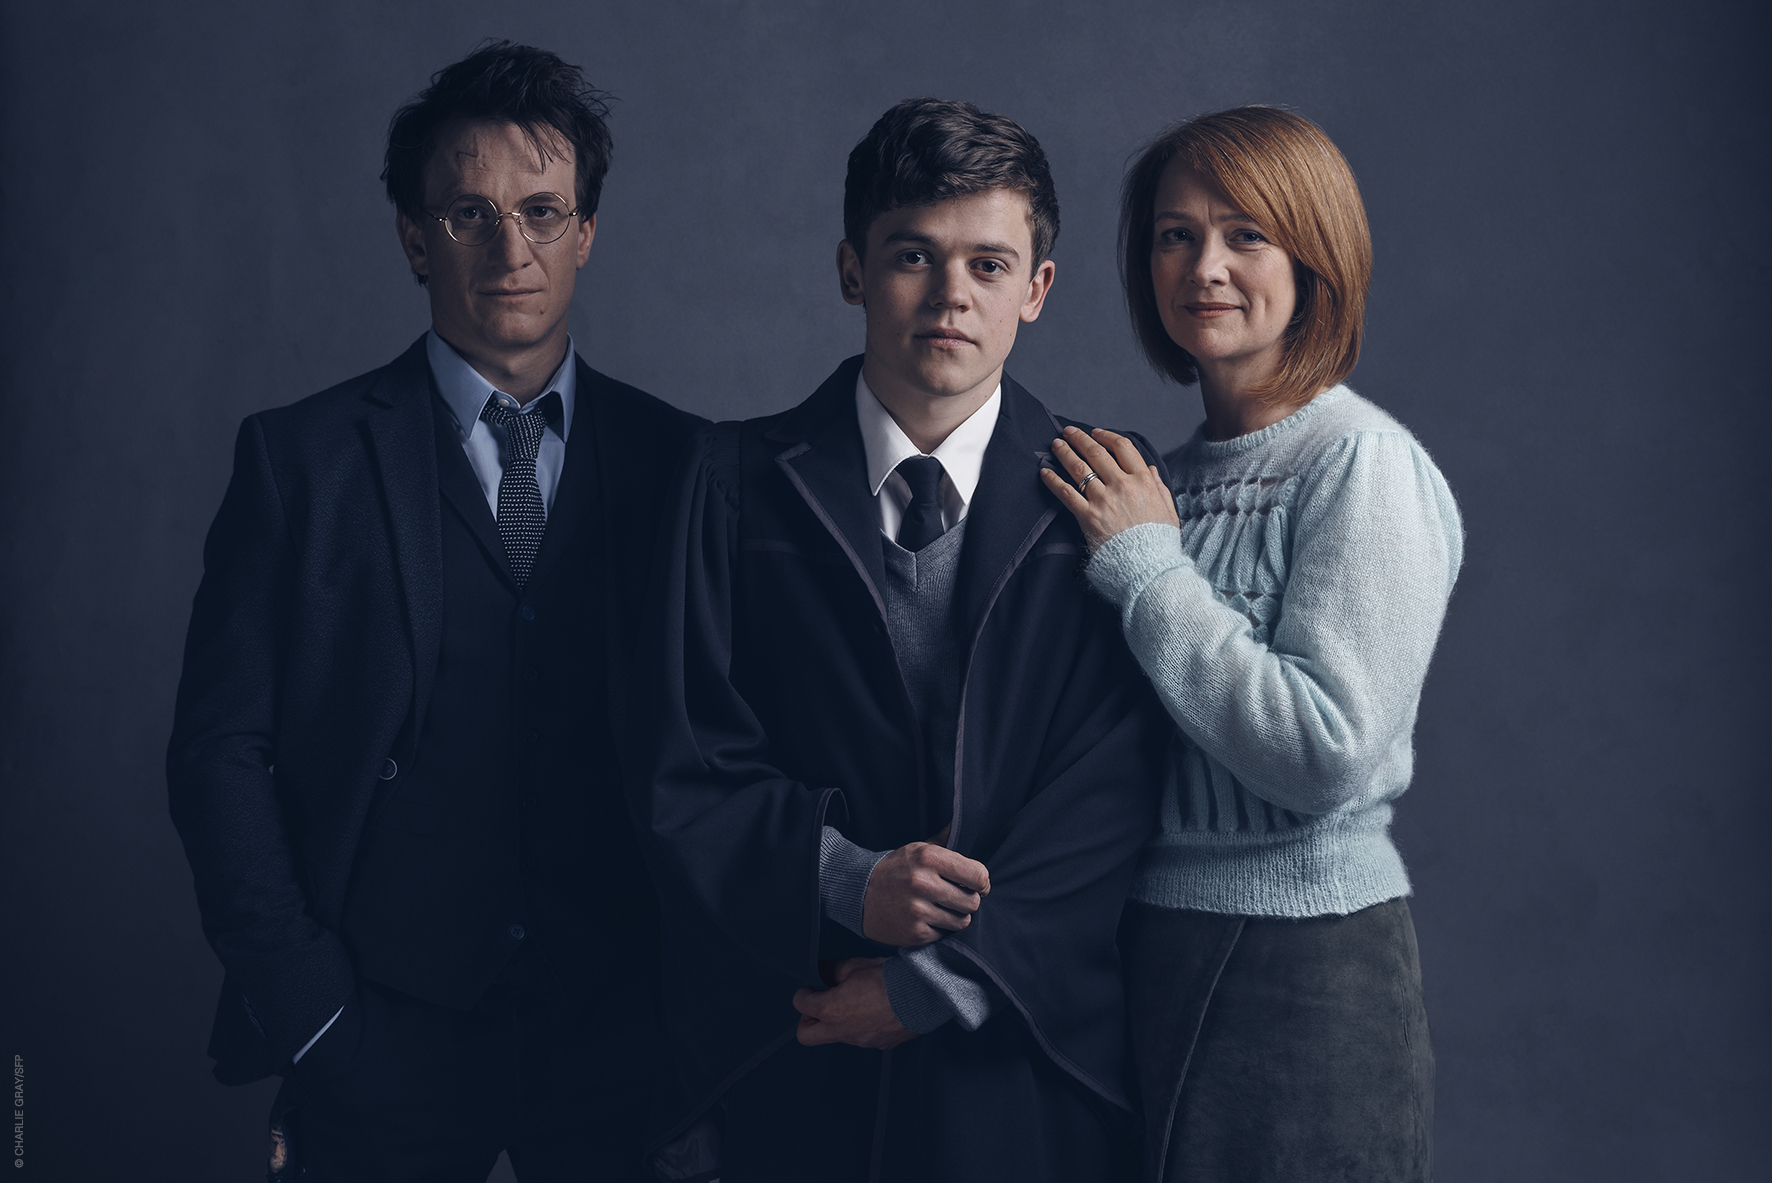 Let's talk about Ginny in 'Harry Potter and the Cursed Child'